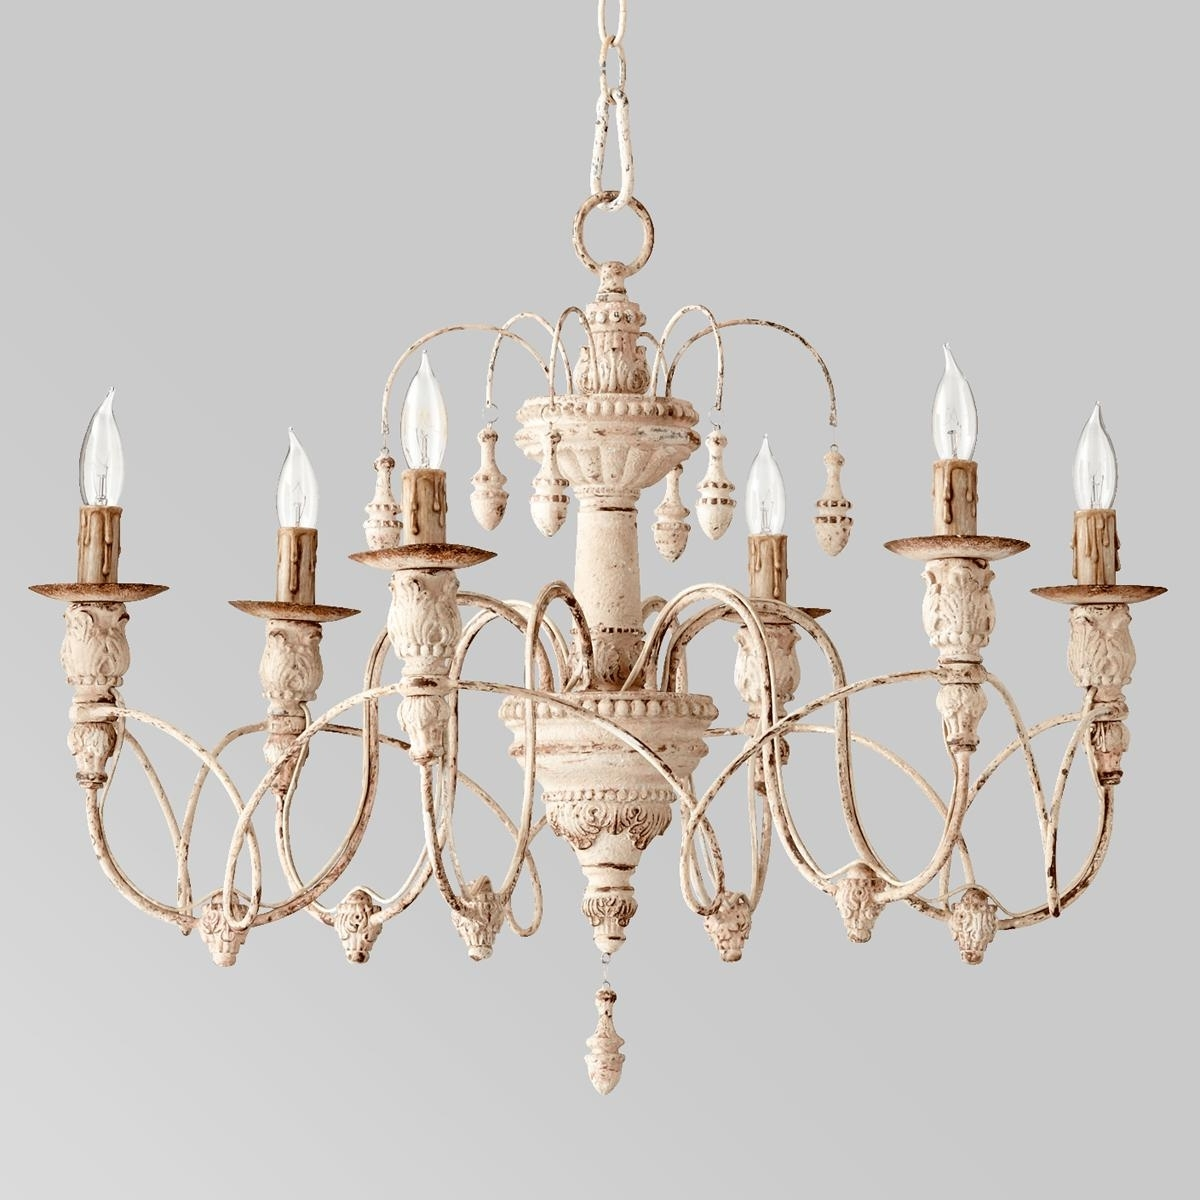 Cream Chandeliers With Well Known Gustavian Style White Chandelier (View 9 of 20)